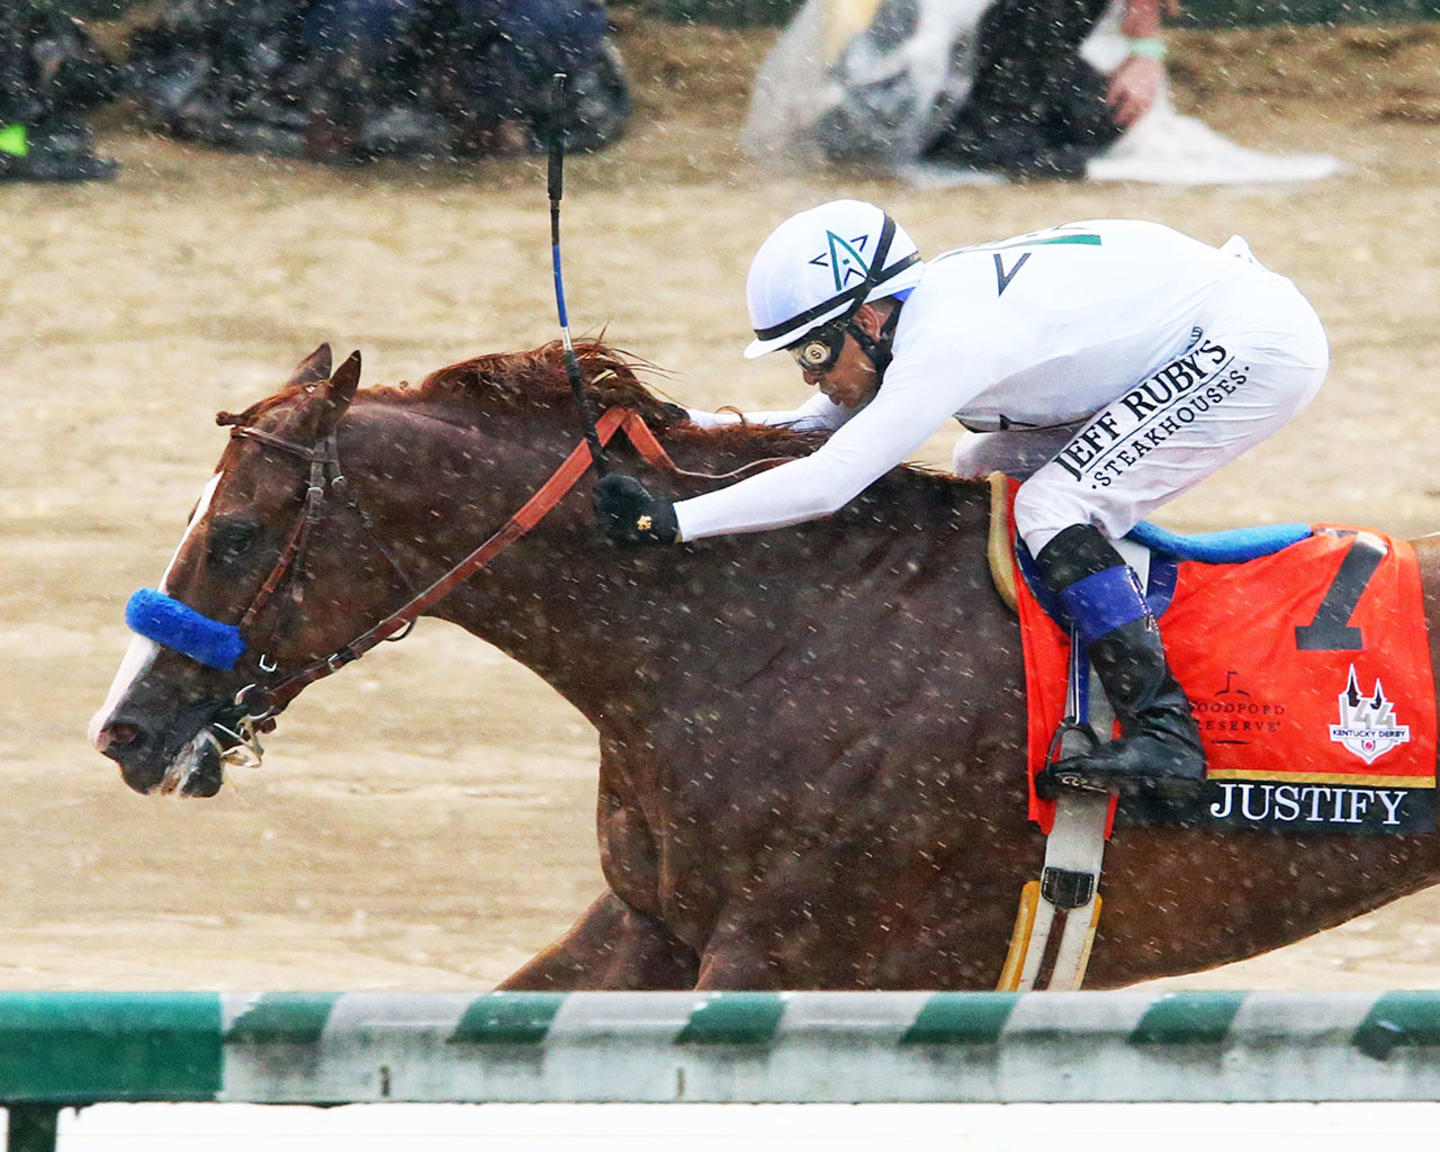 JUSTIFY---The-Kentucky-Derby-G1---144th-Running---05-05-18---R12---CD---Inside-Finish-01